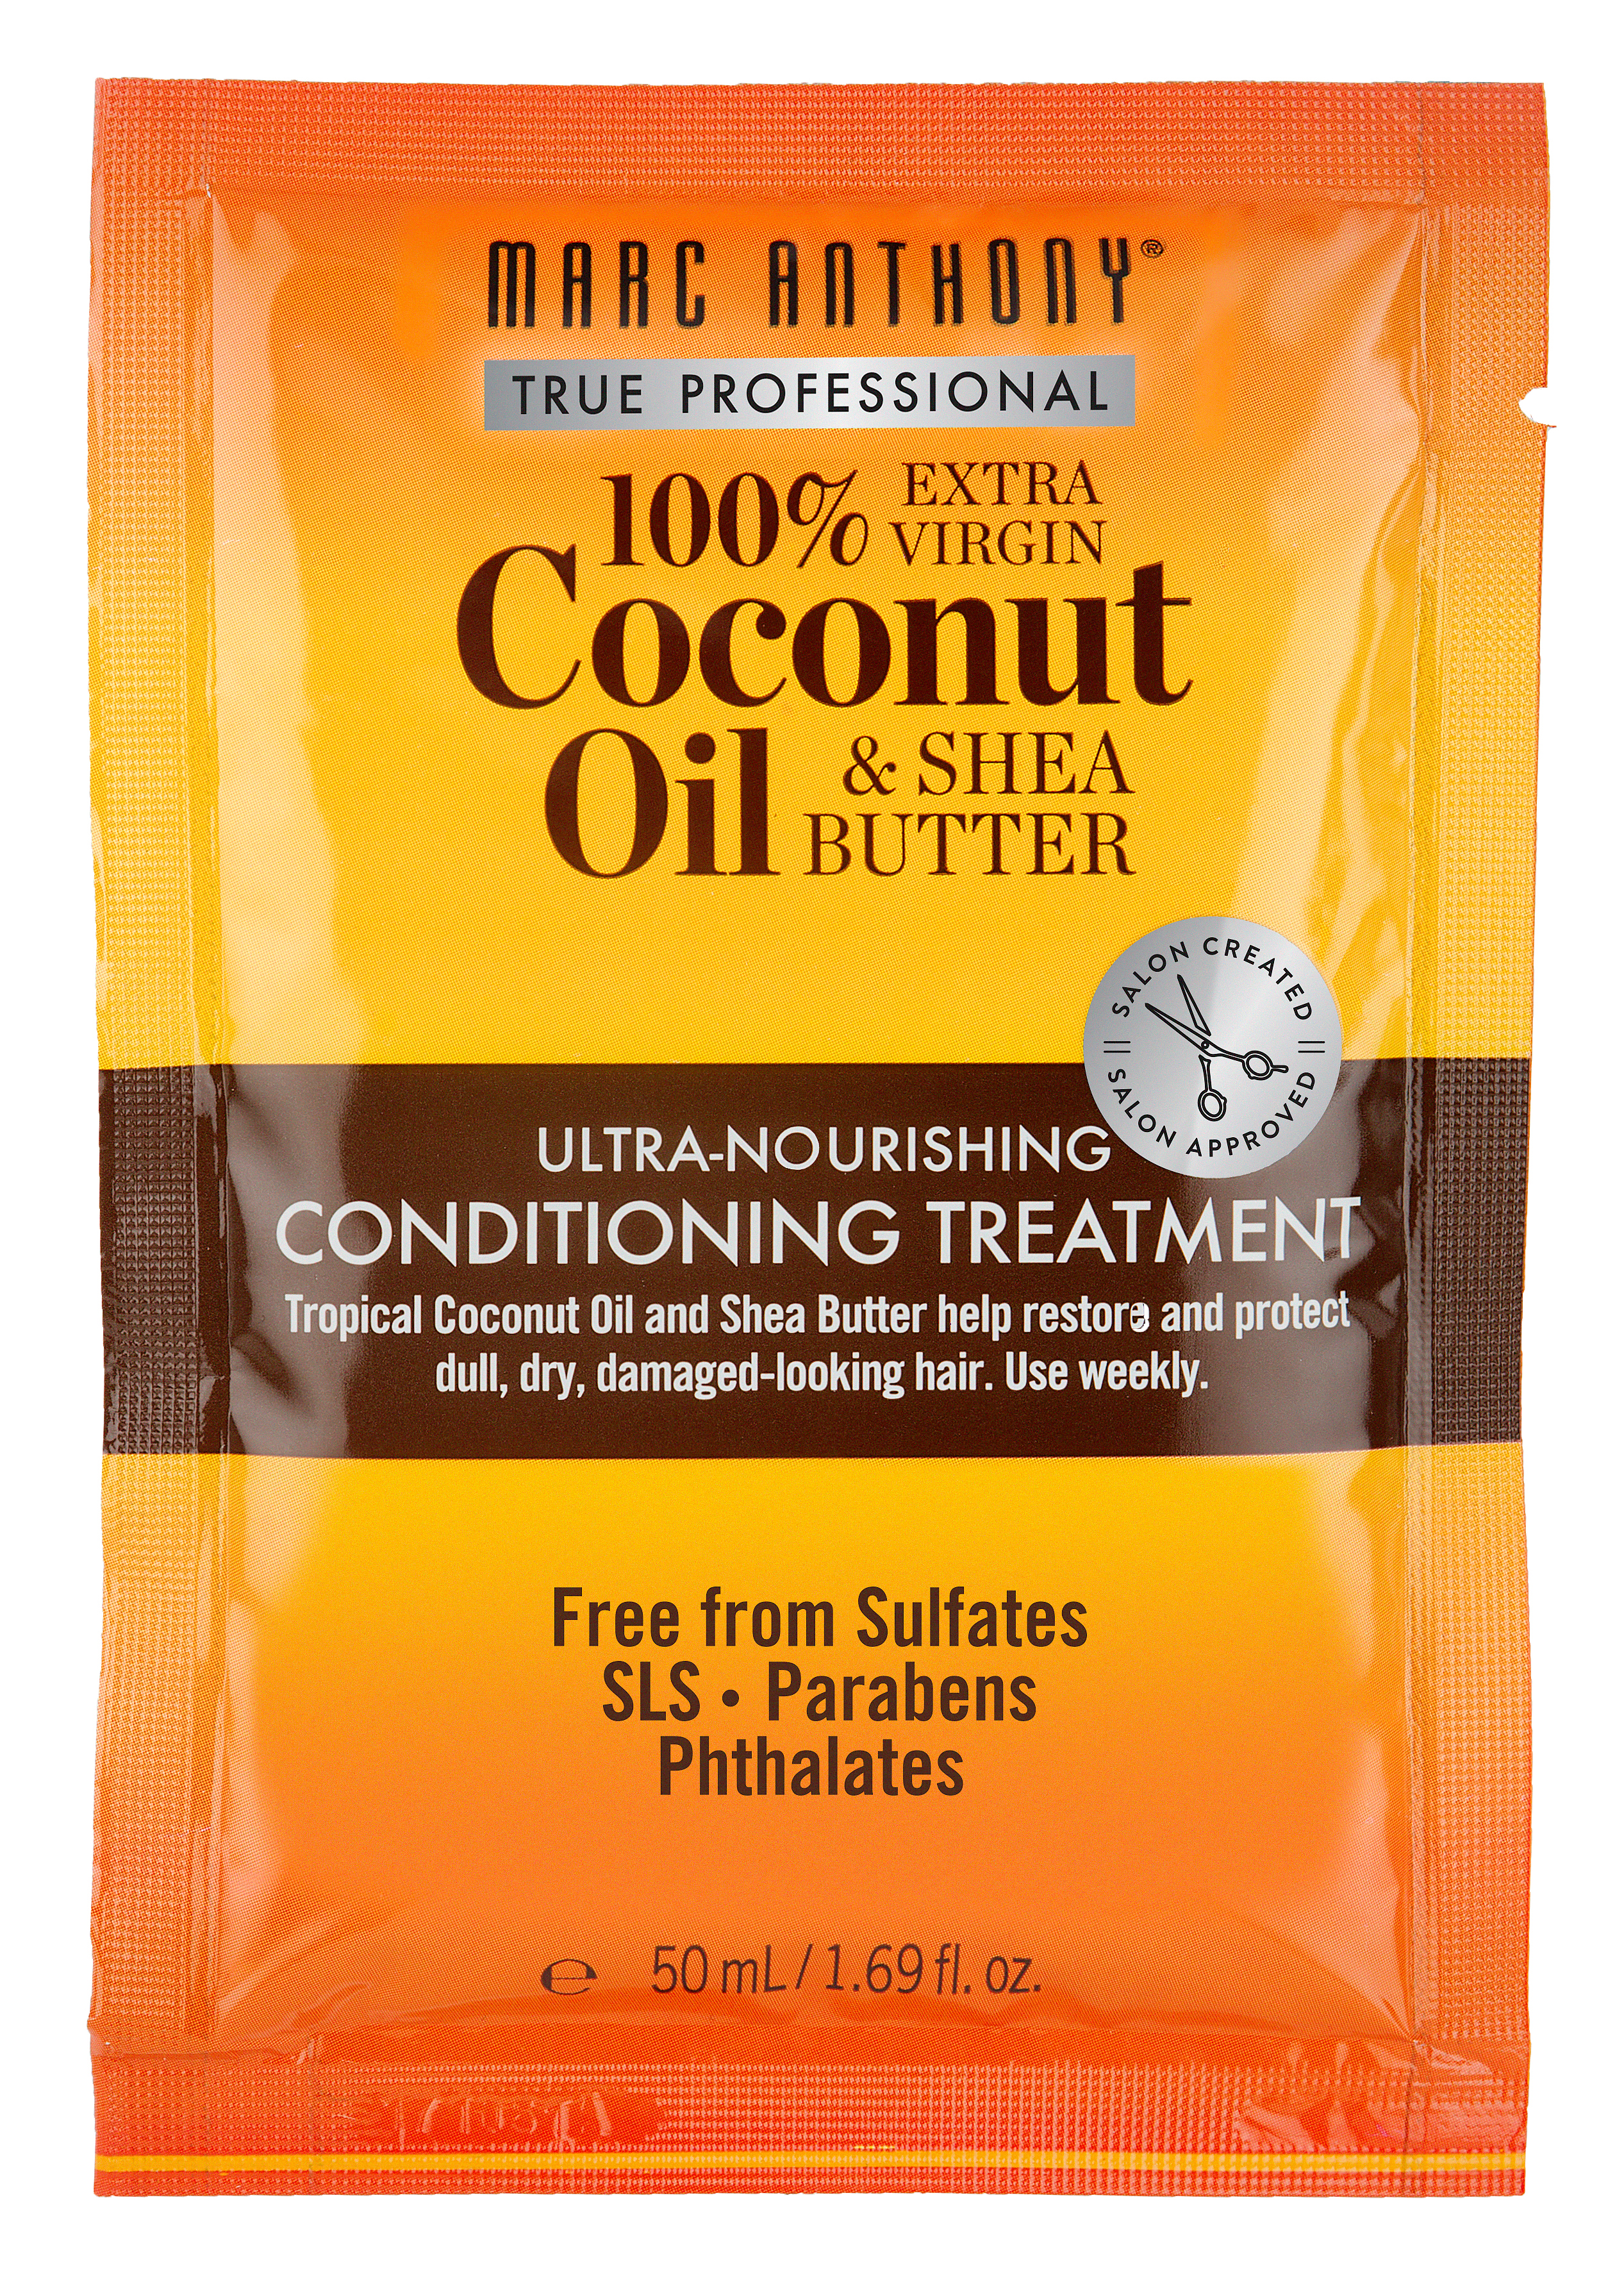 Hydrating Coconut Oil & Shea Butter Conditioning Treament